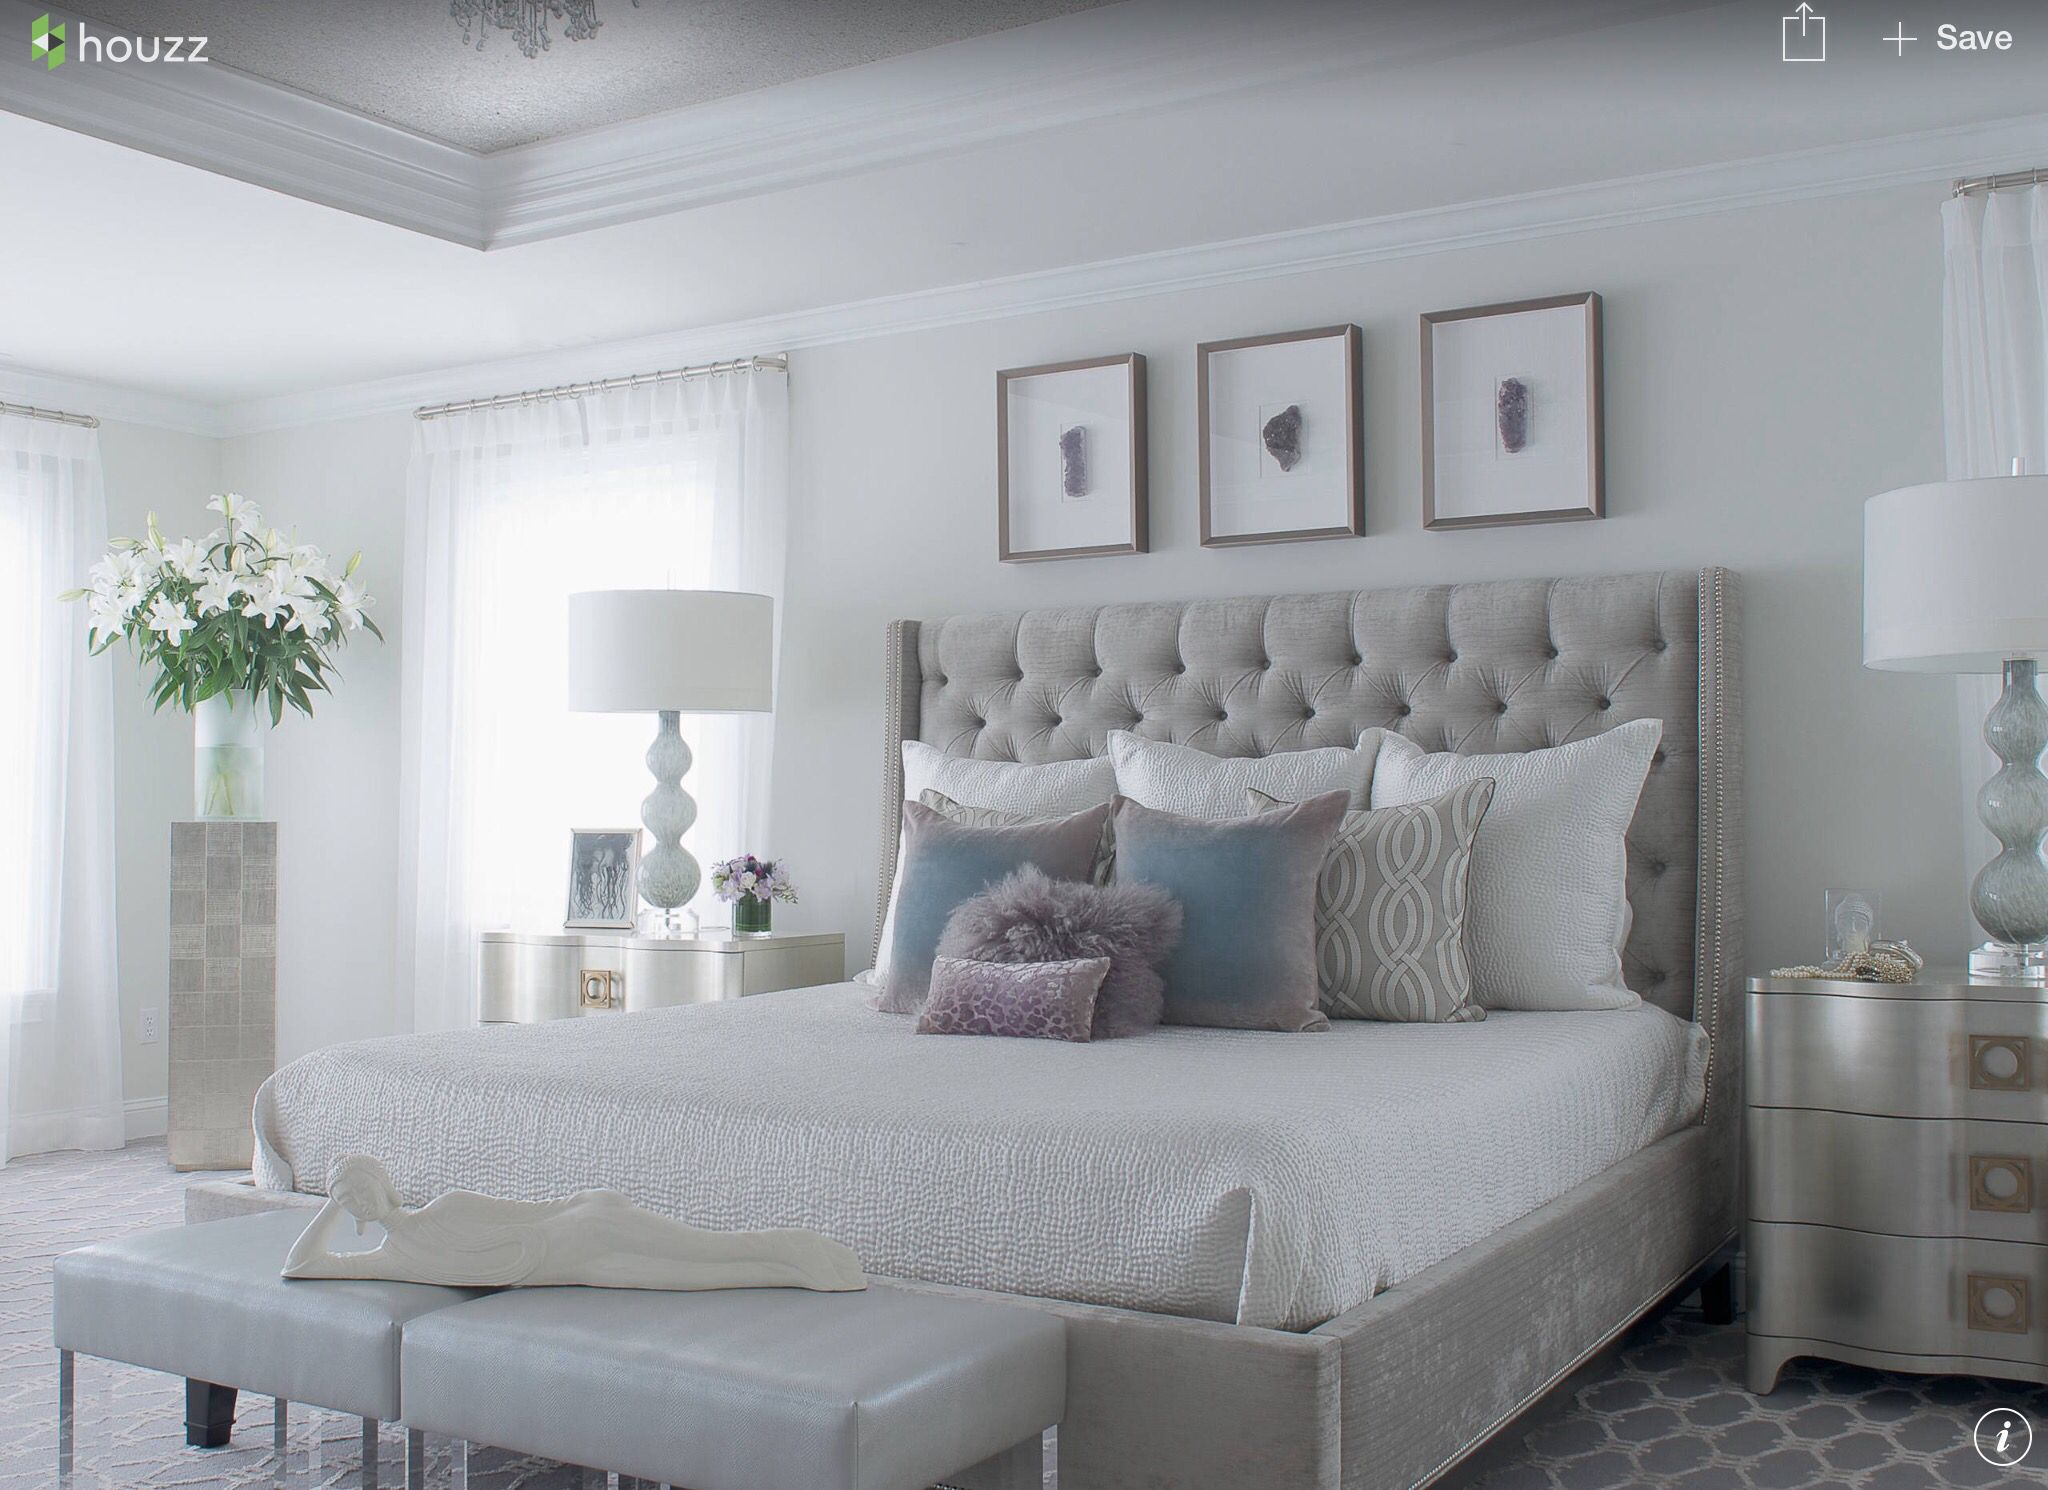 houzz bedroom furniture. Houzz Bedroom Furniture S